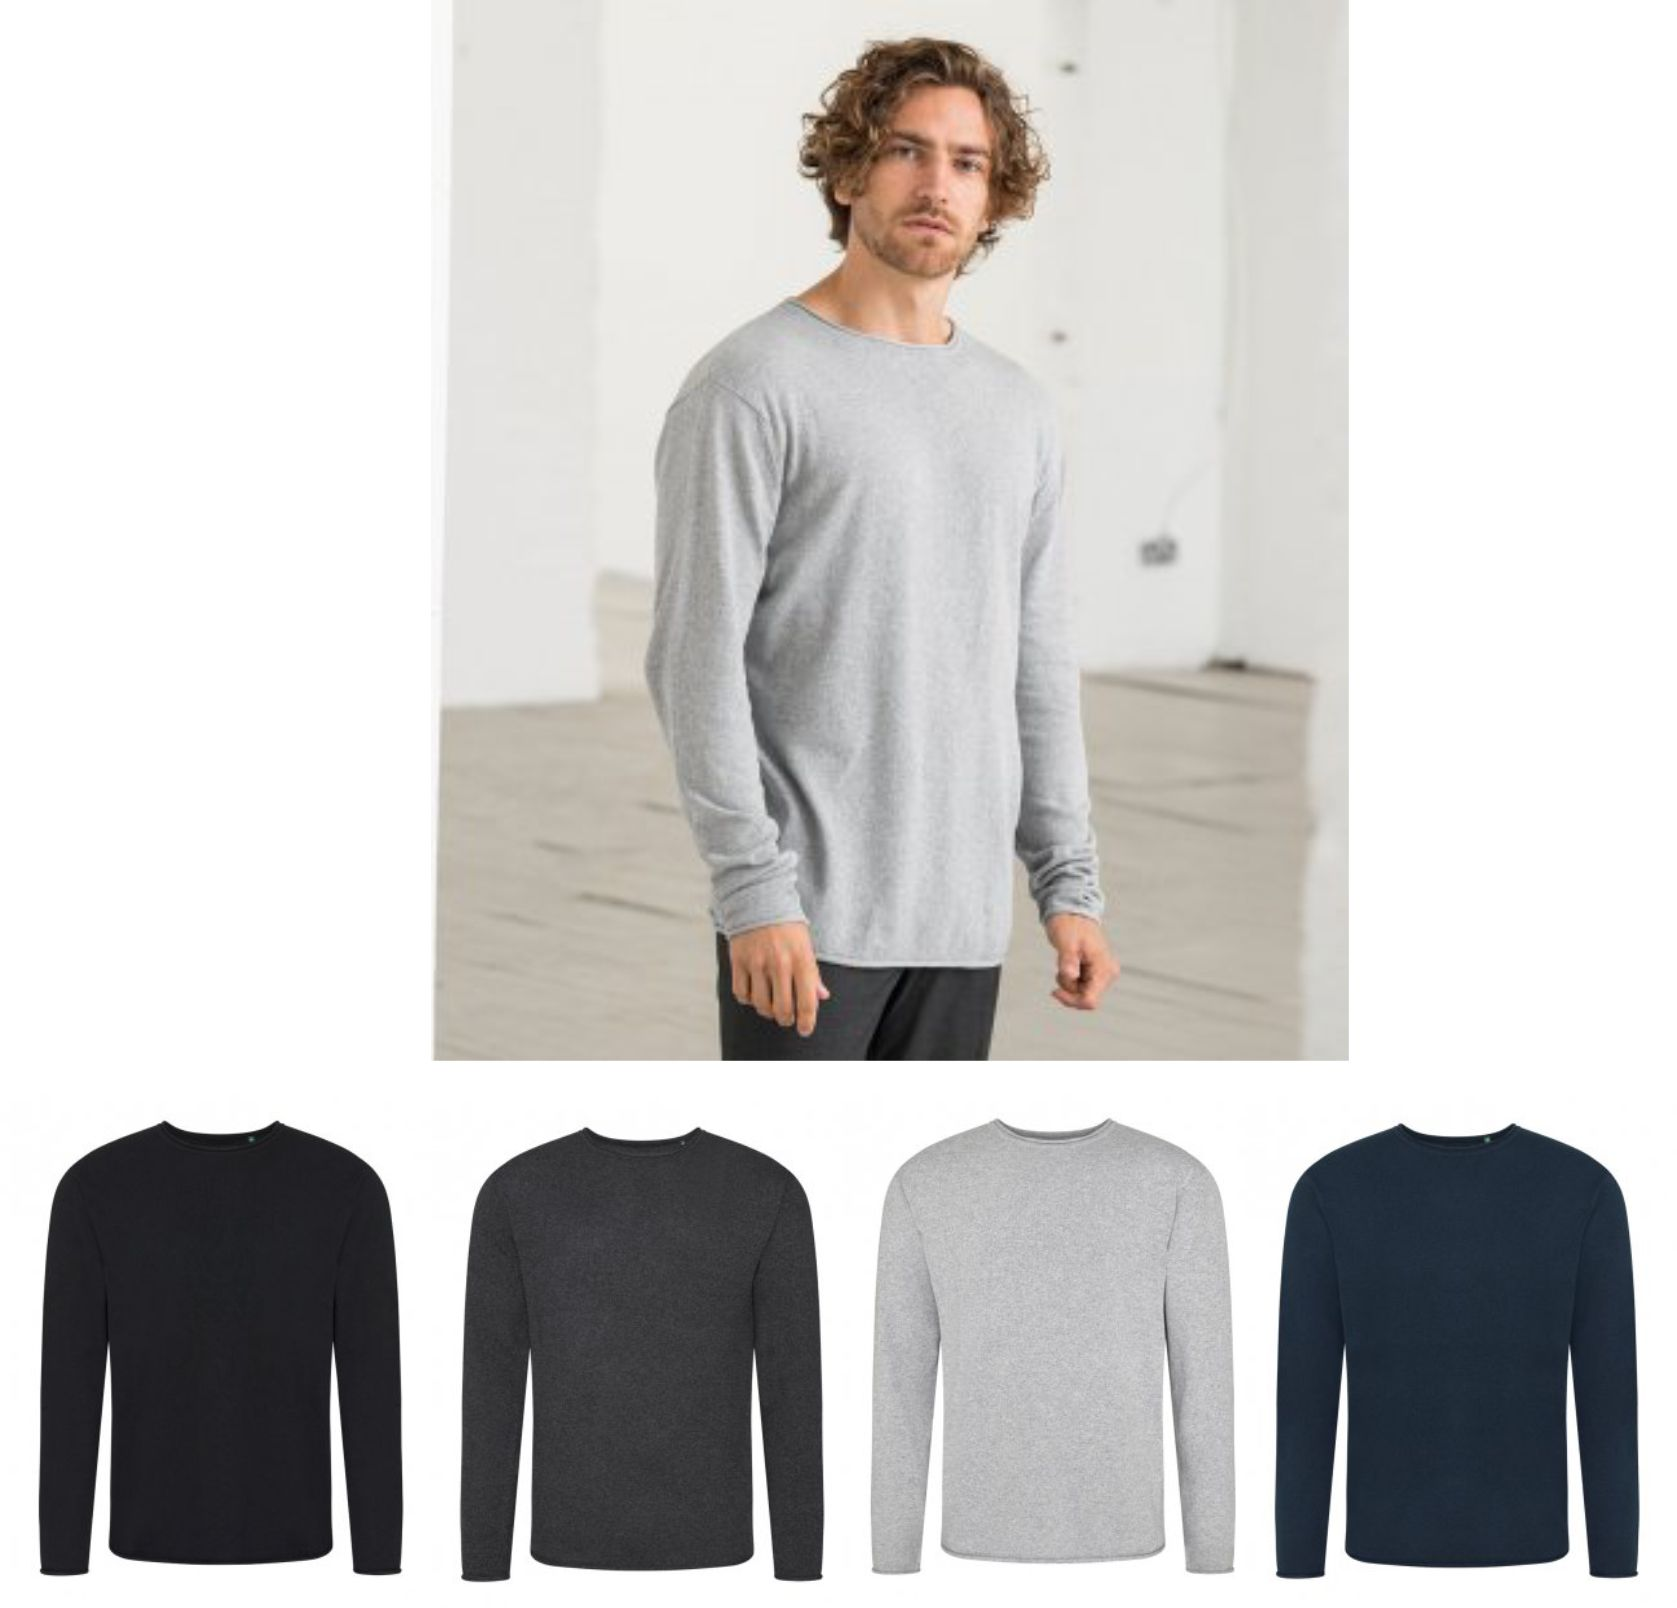 EA060 Ecologie by AWD Arenal Lightweight Sweater